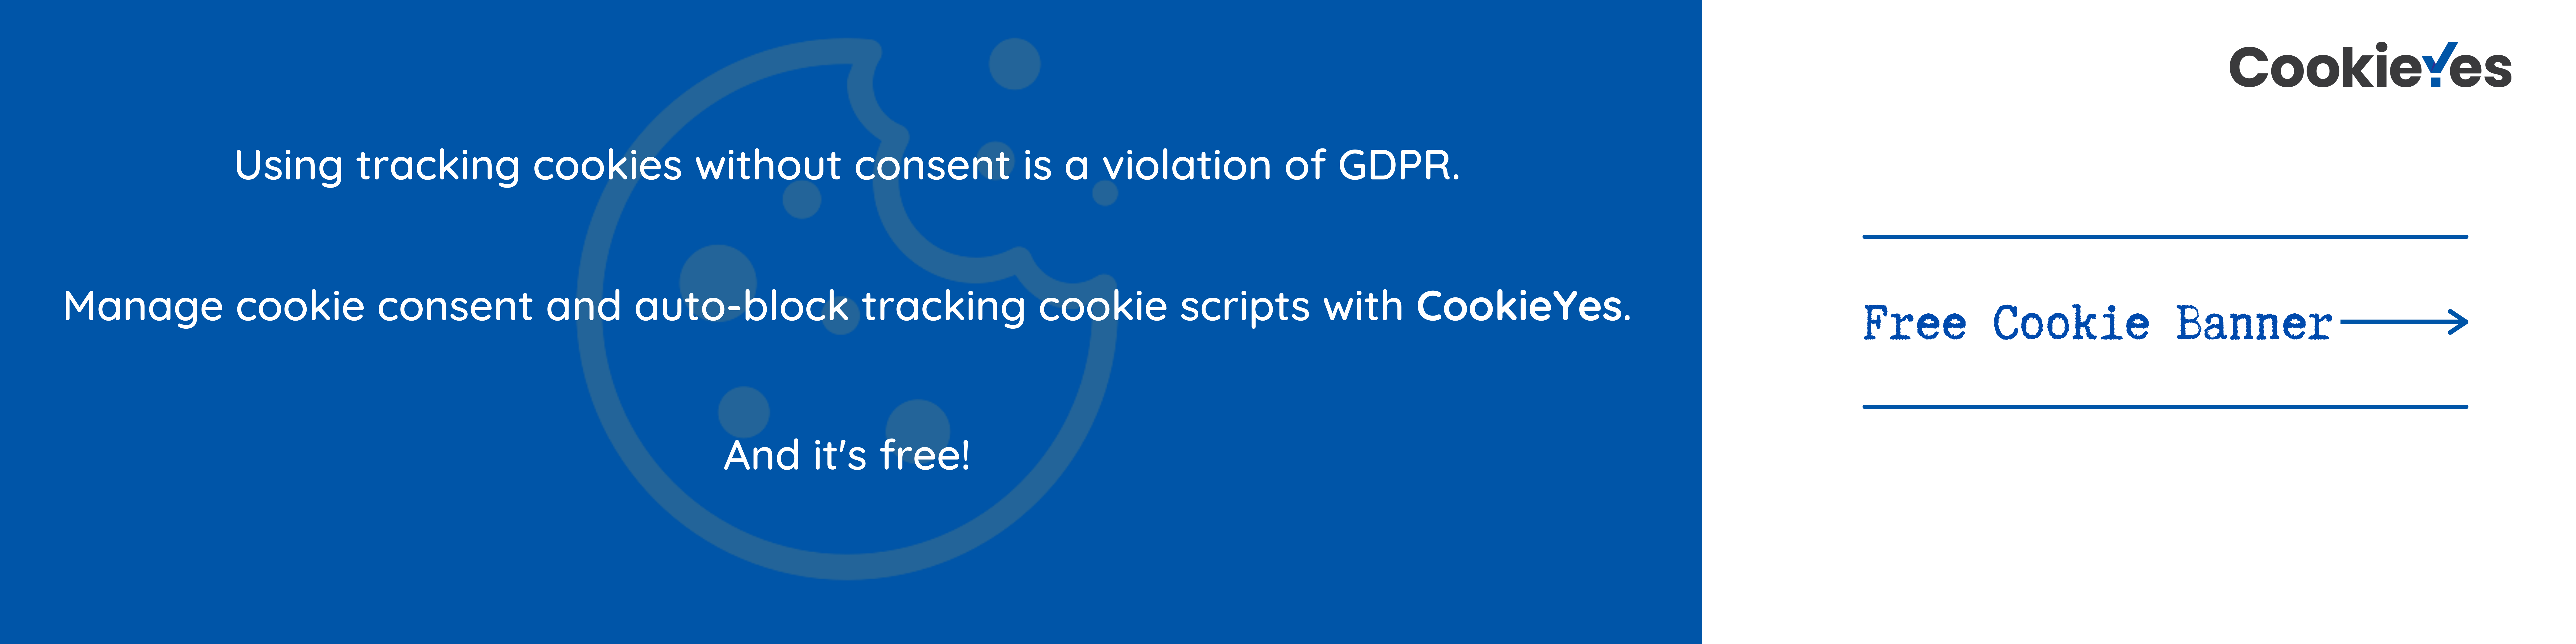 cookieyes cta for tracking cookies